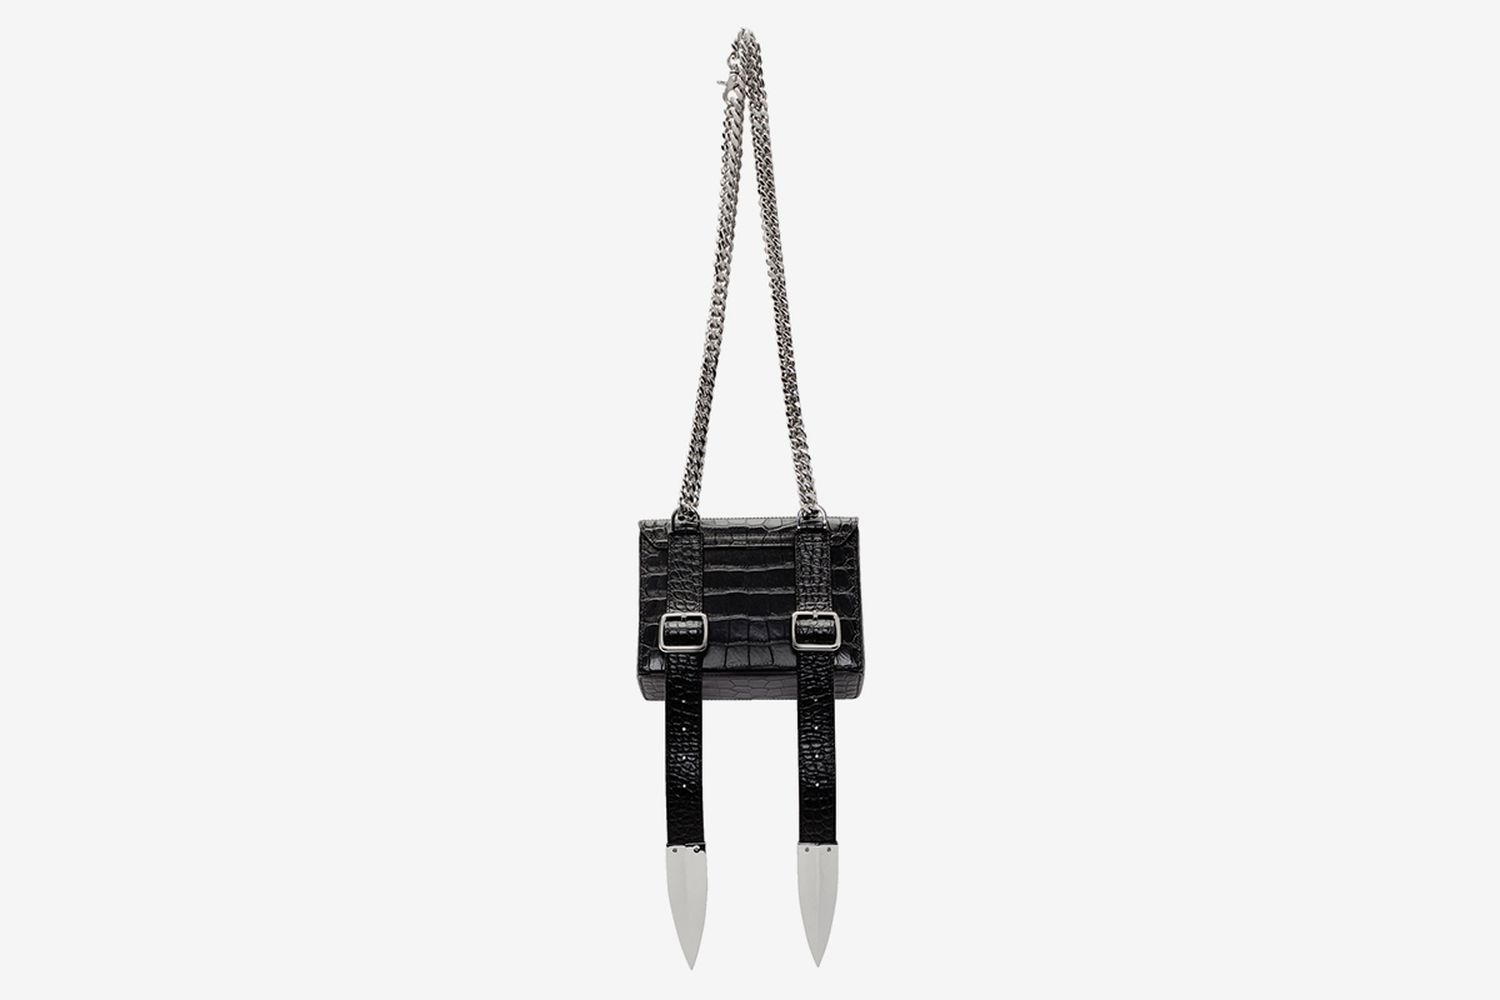 Croc Leather Shoulder Bag